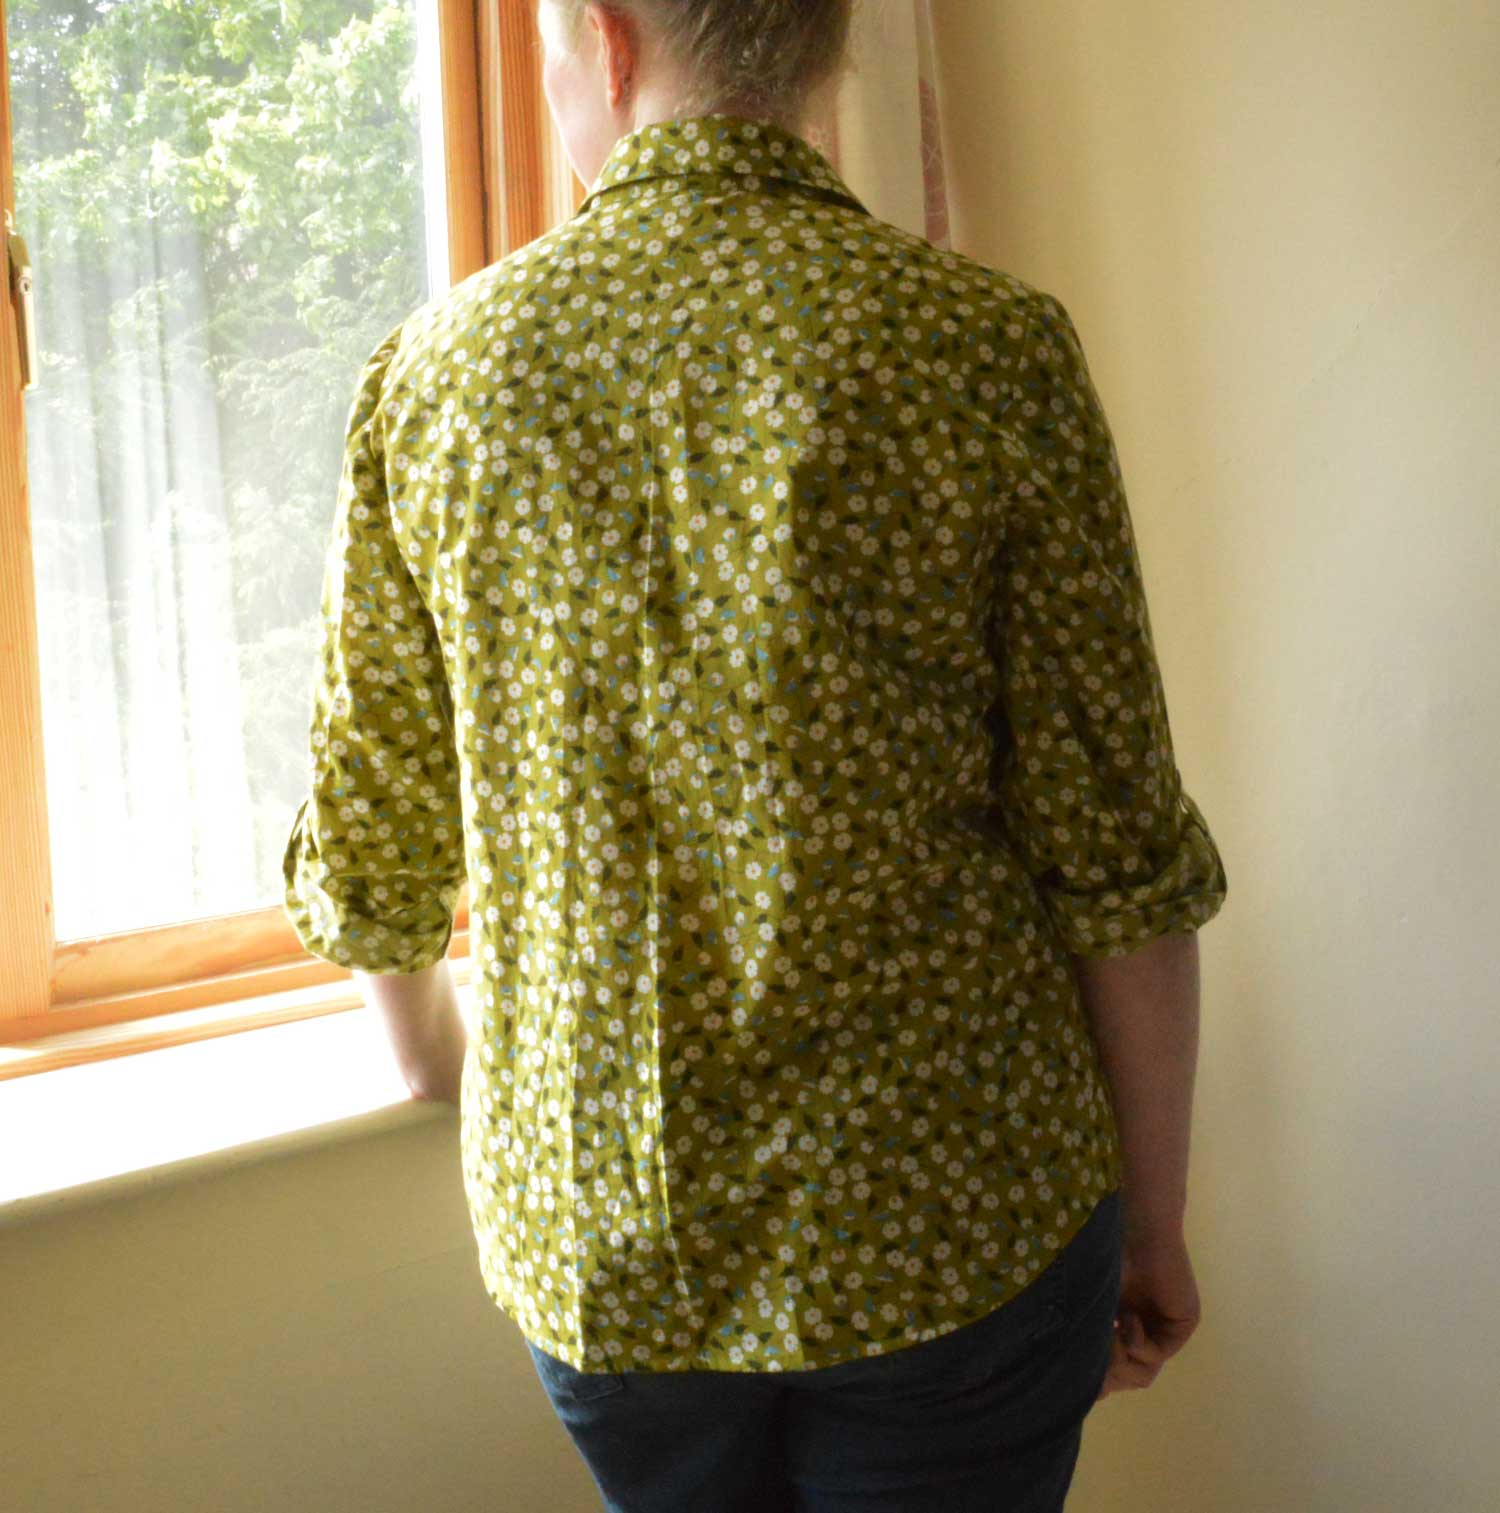 Holm Sown: Butterick B5526 Shirt // daisy pima cotton lawn - green // shirt back